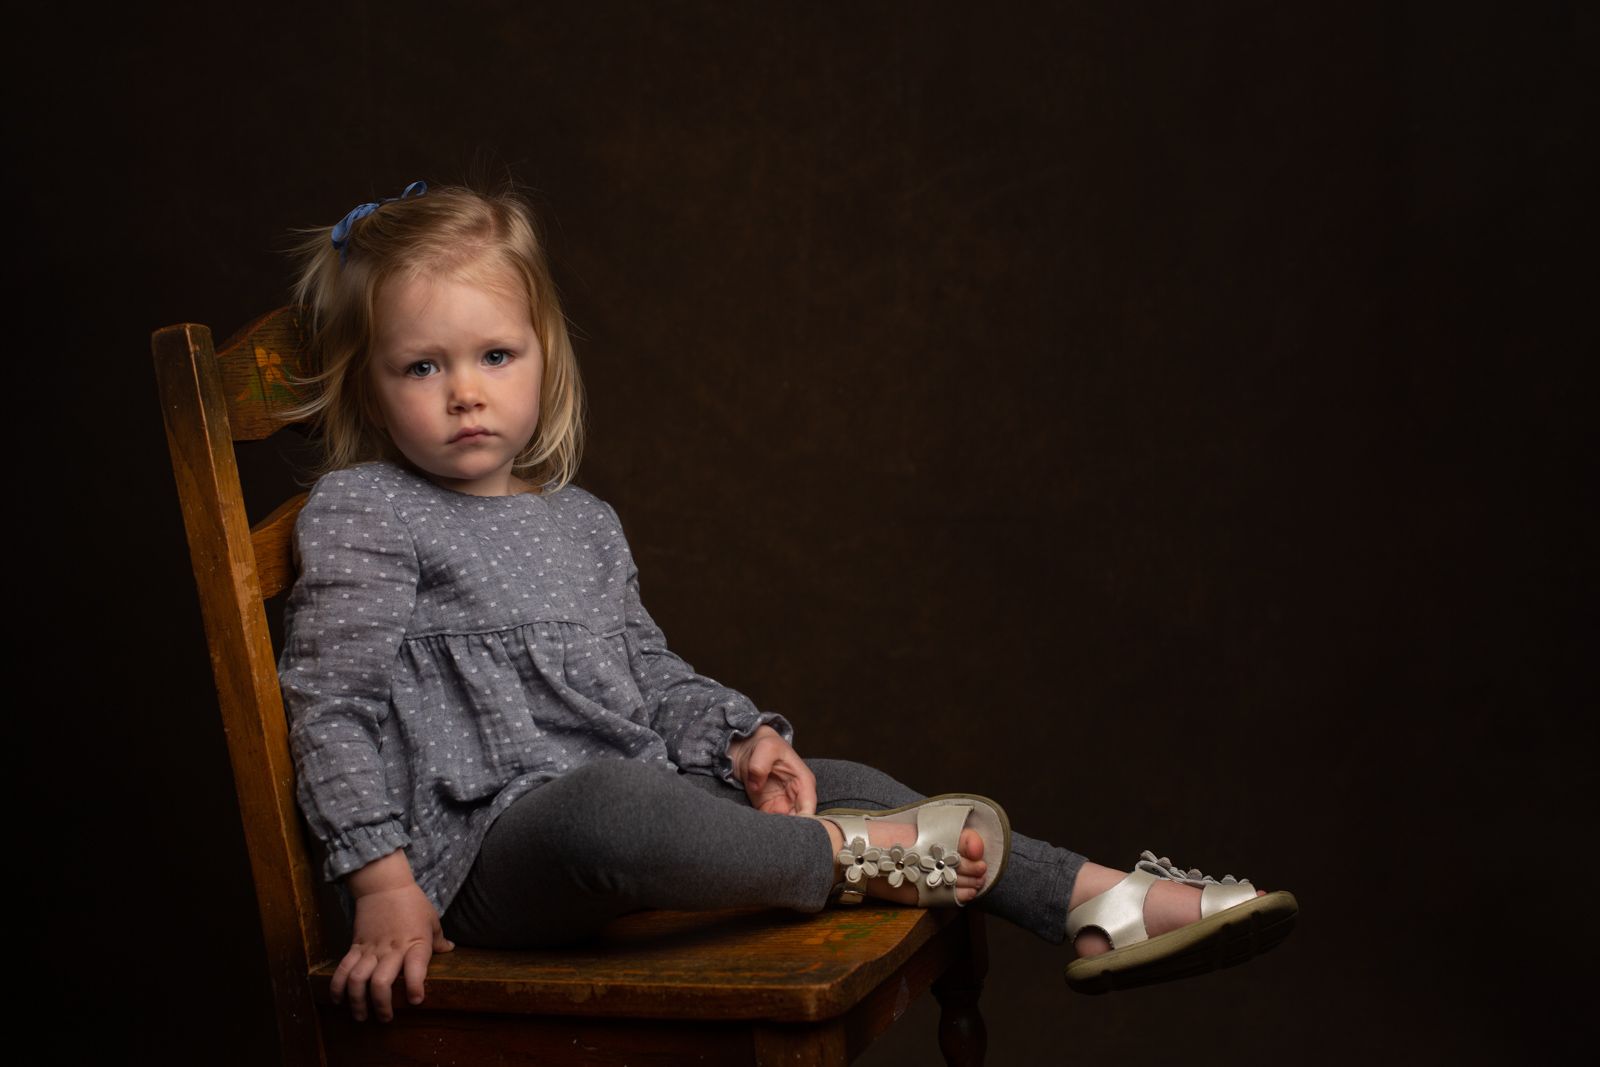 toddler on chair in front of dark background by leah mcclean The-Salted-Image-jobrett-childrens-clothing